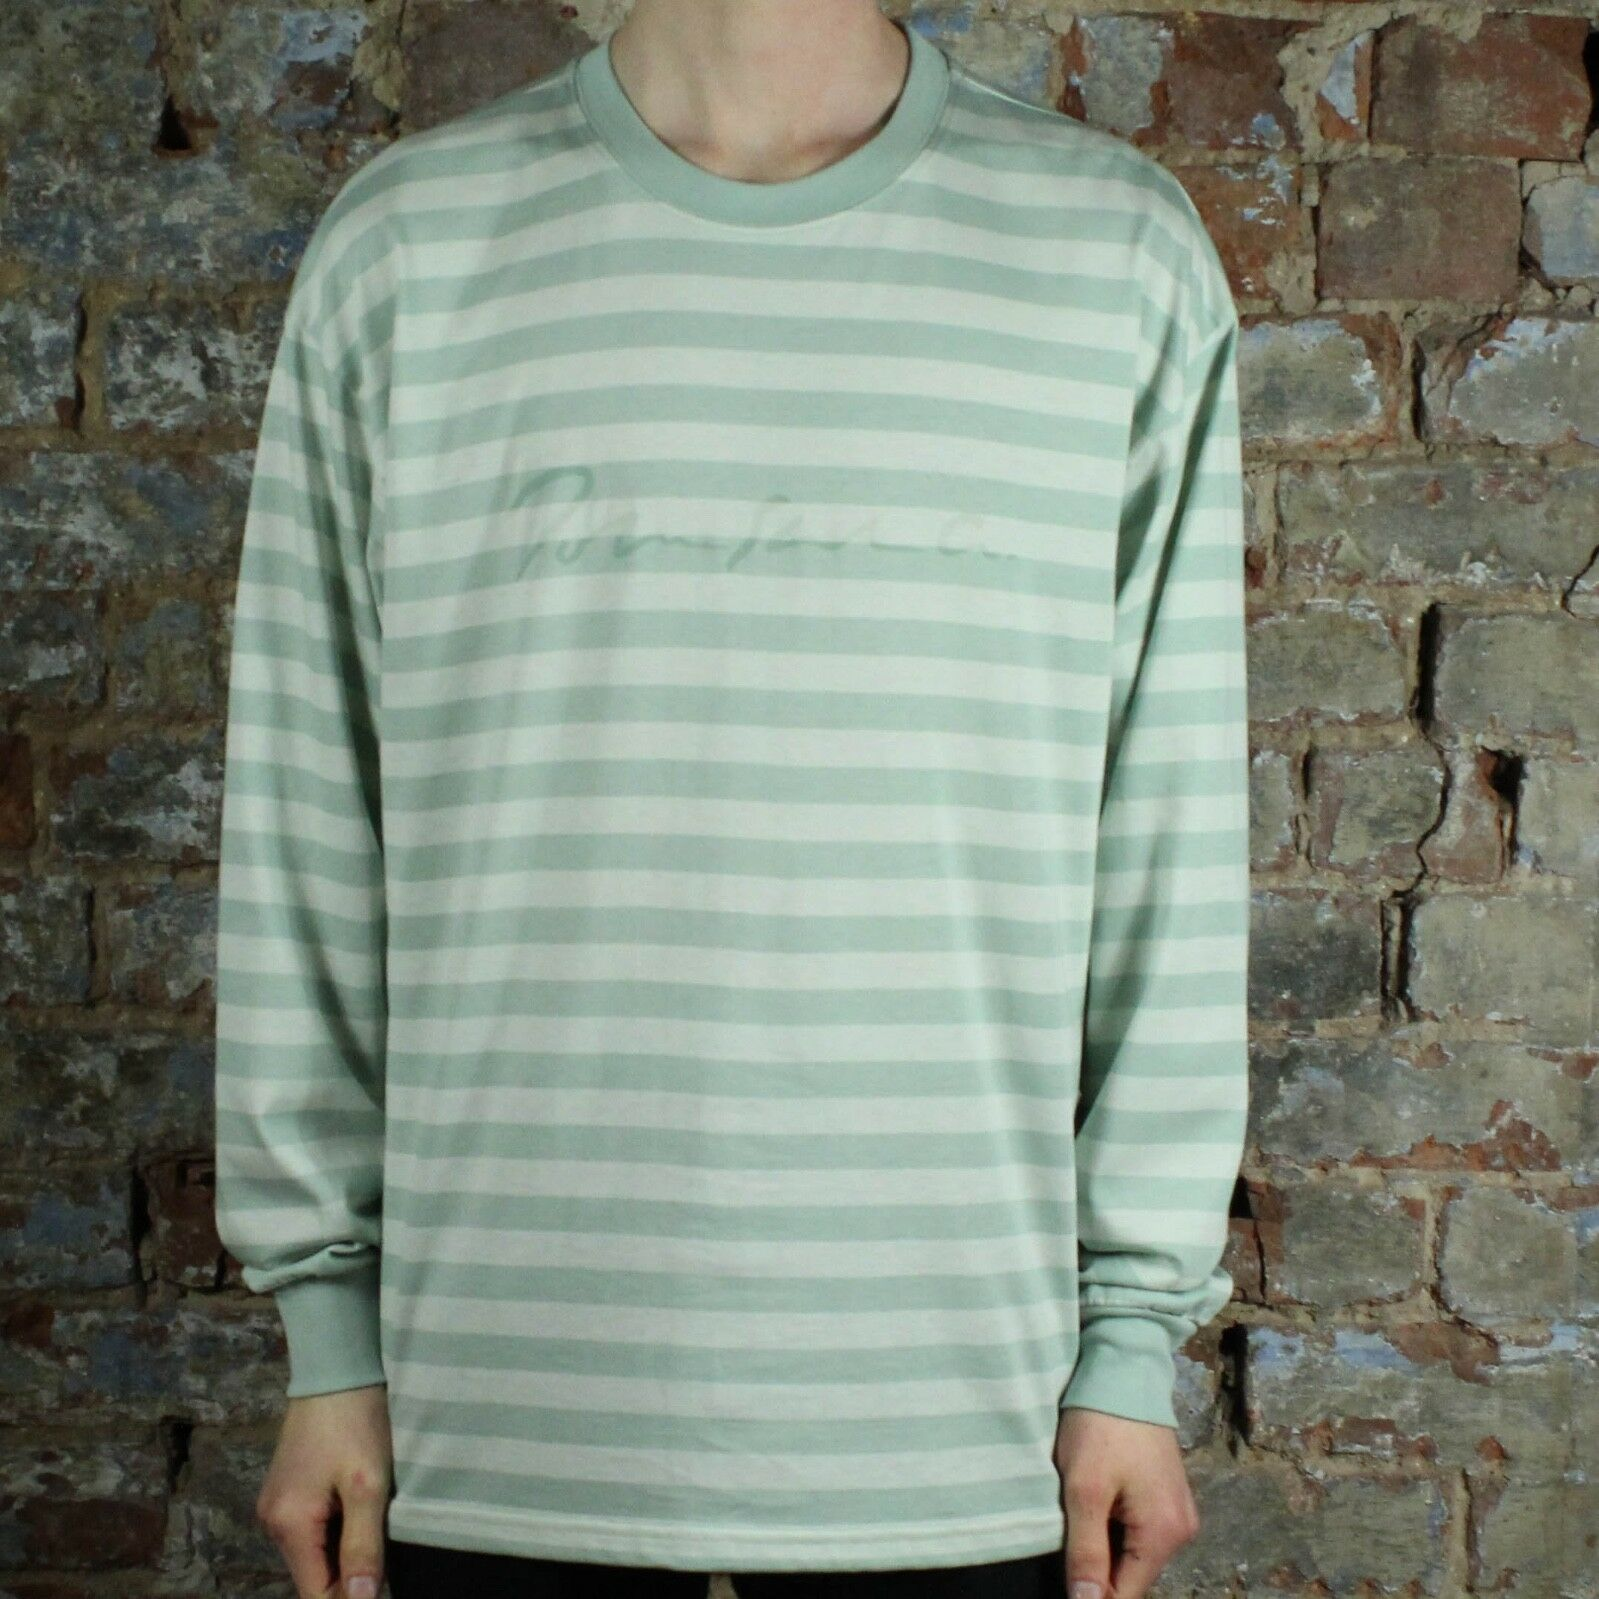 Polar Signature Striped Long Sleeve T-Shirt Tee in Stone Blau in Größe S L